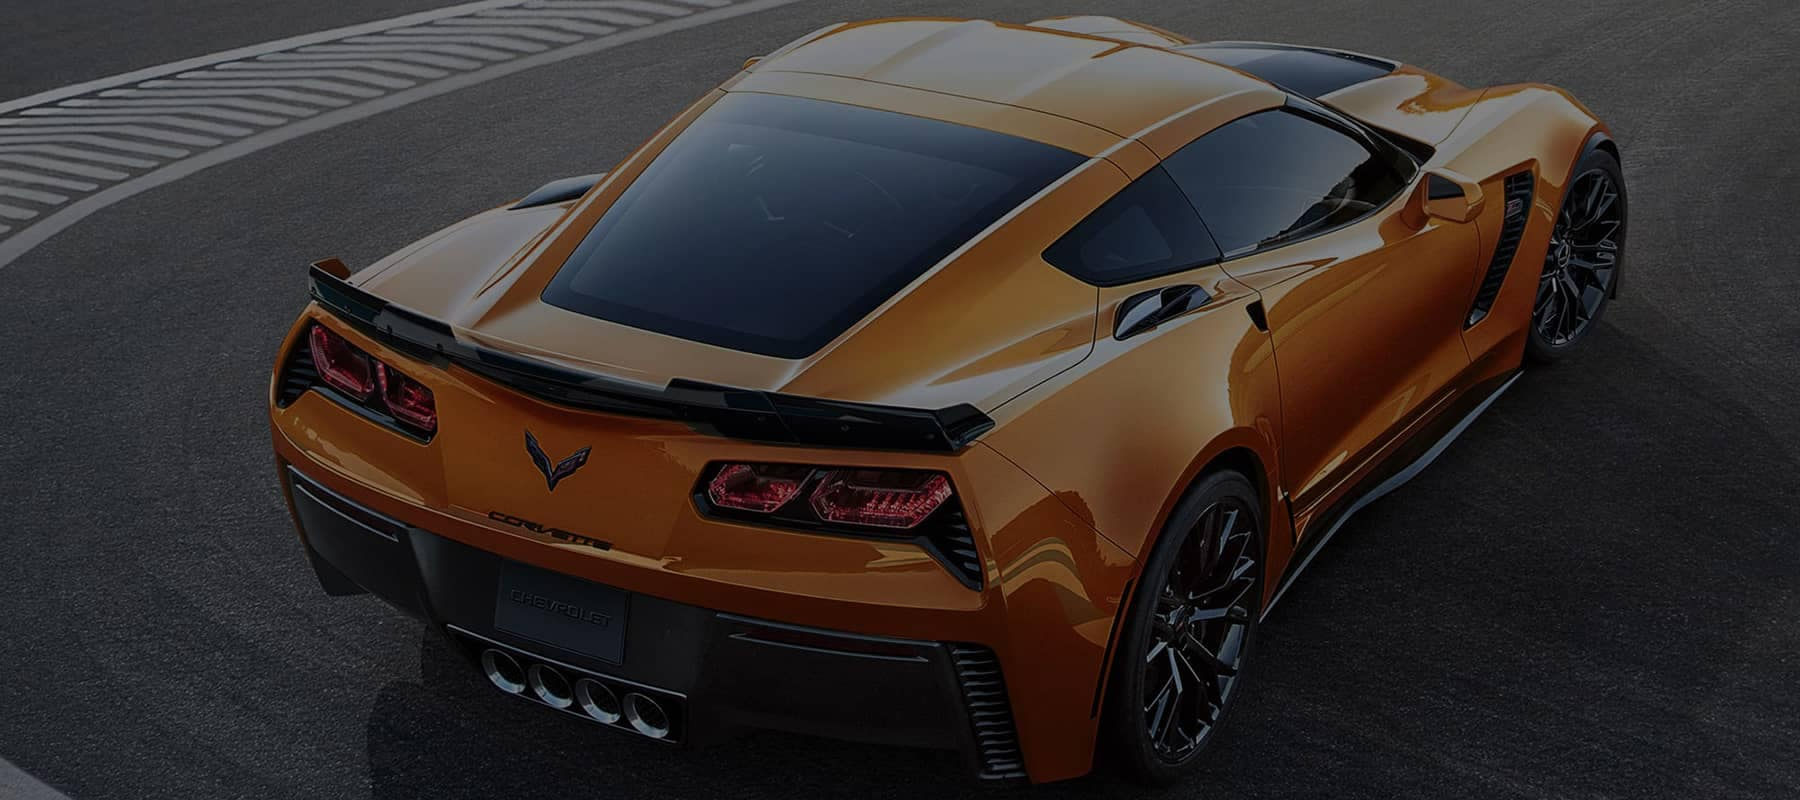 Silverado Lease Deals >> 2019 Chevrolet Corvette Z06 Highlights | Stingray ...